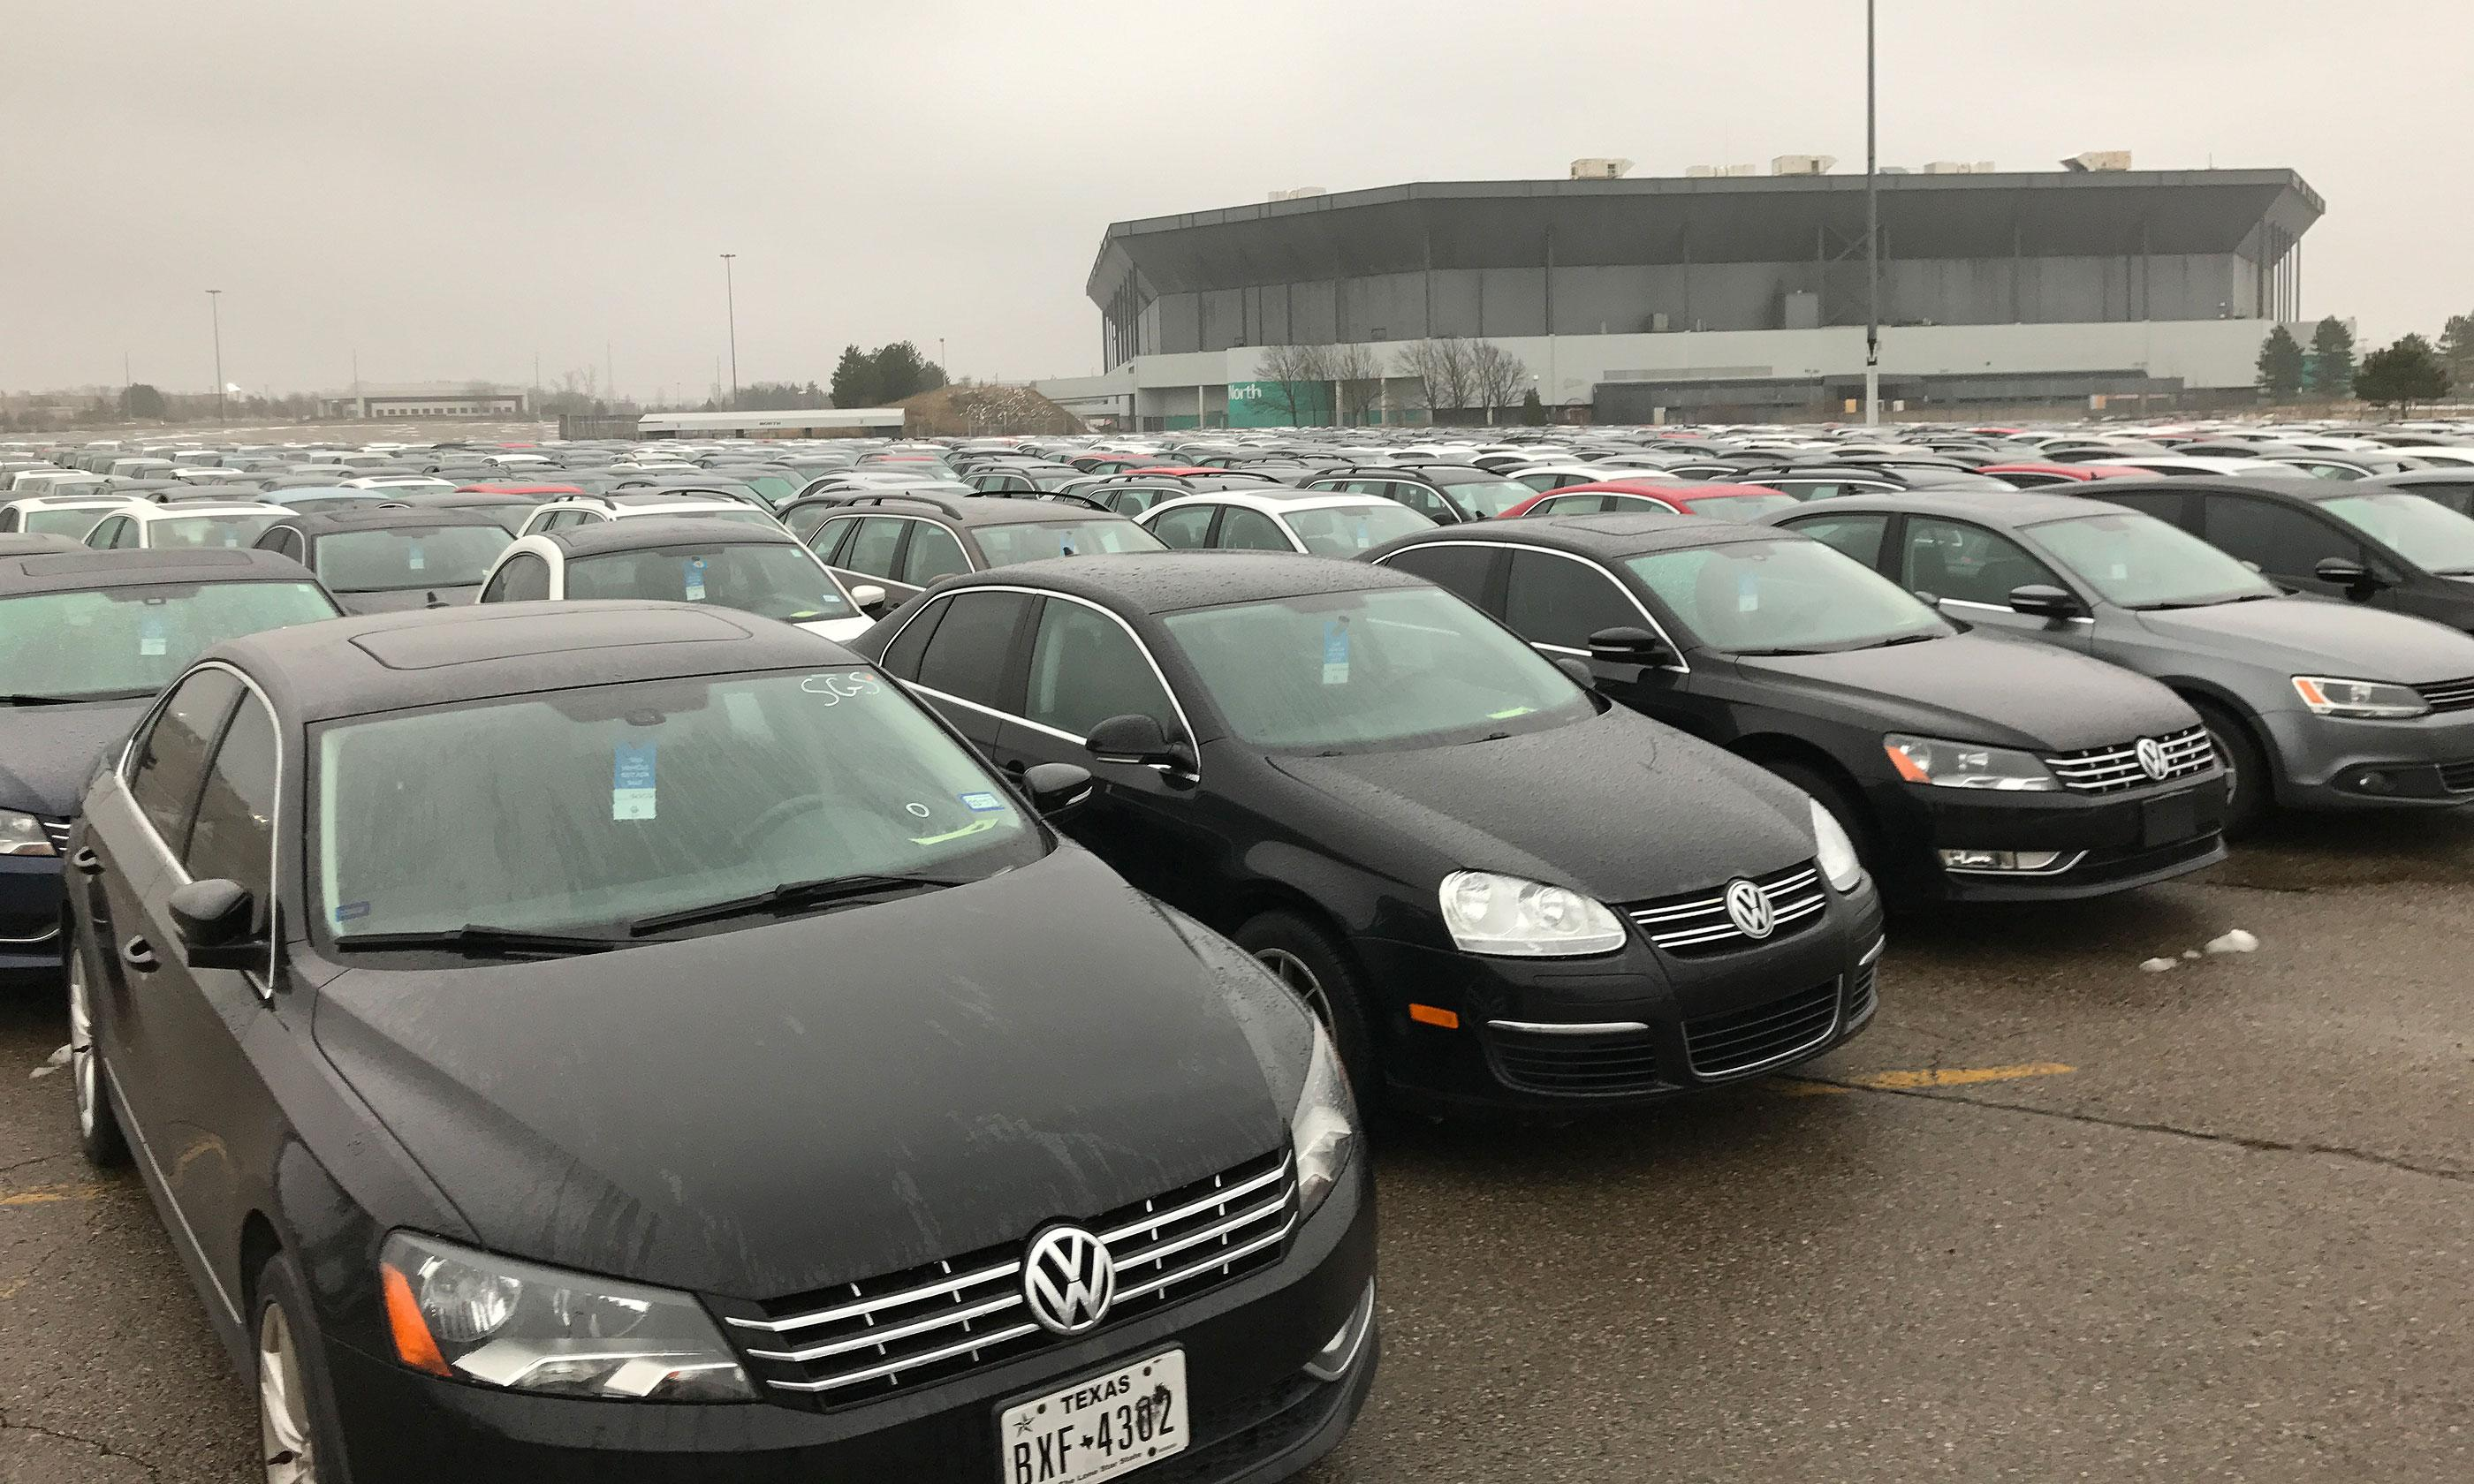 thousands of vw and audi models with sel engines are being stored at a former stadium used by the detroit lions in pontiac mich north of detroit